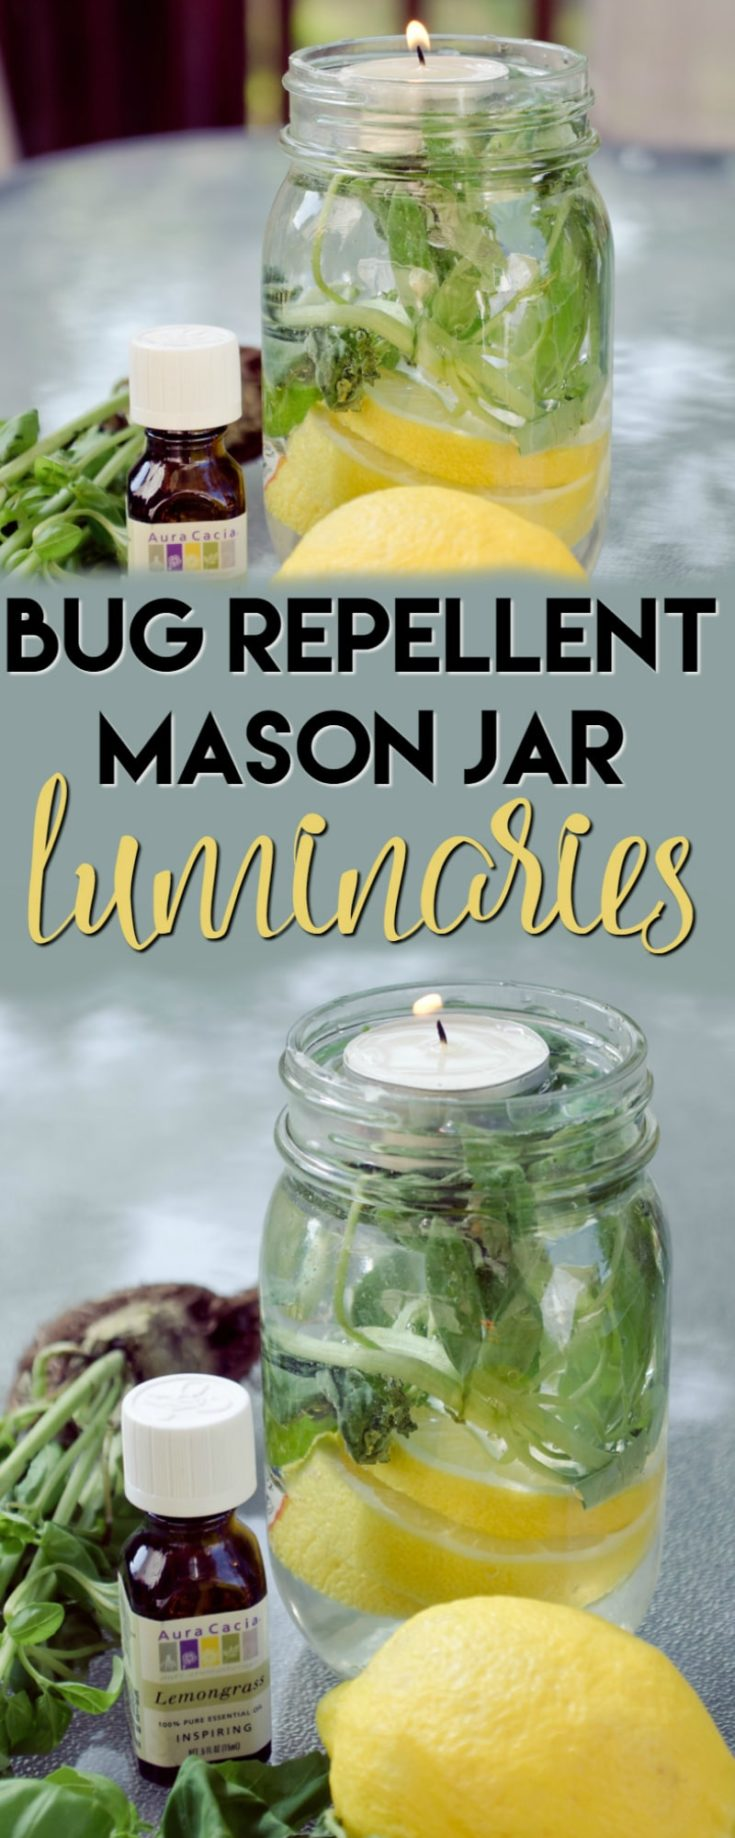 These Bug Repellent Mason Jar Luminaries will be the hit of your summer! Not only will they keep the bugs away but they smell great without any nasty chemicals!